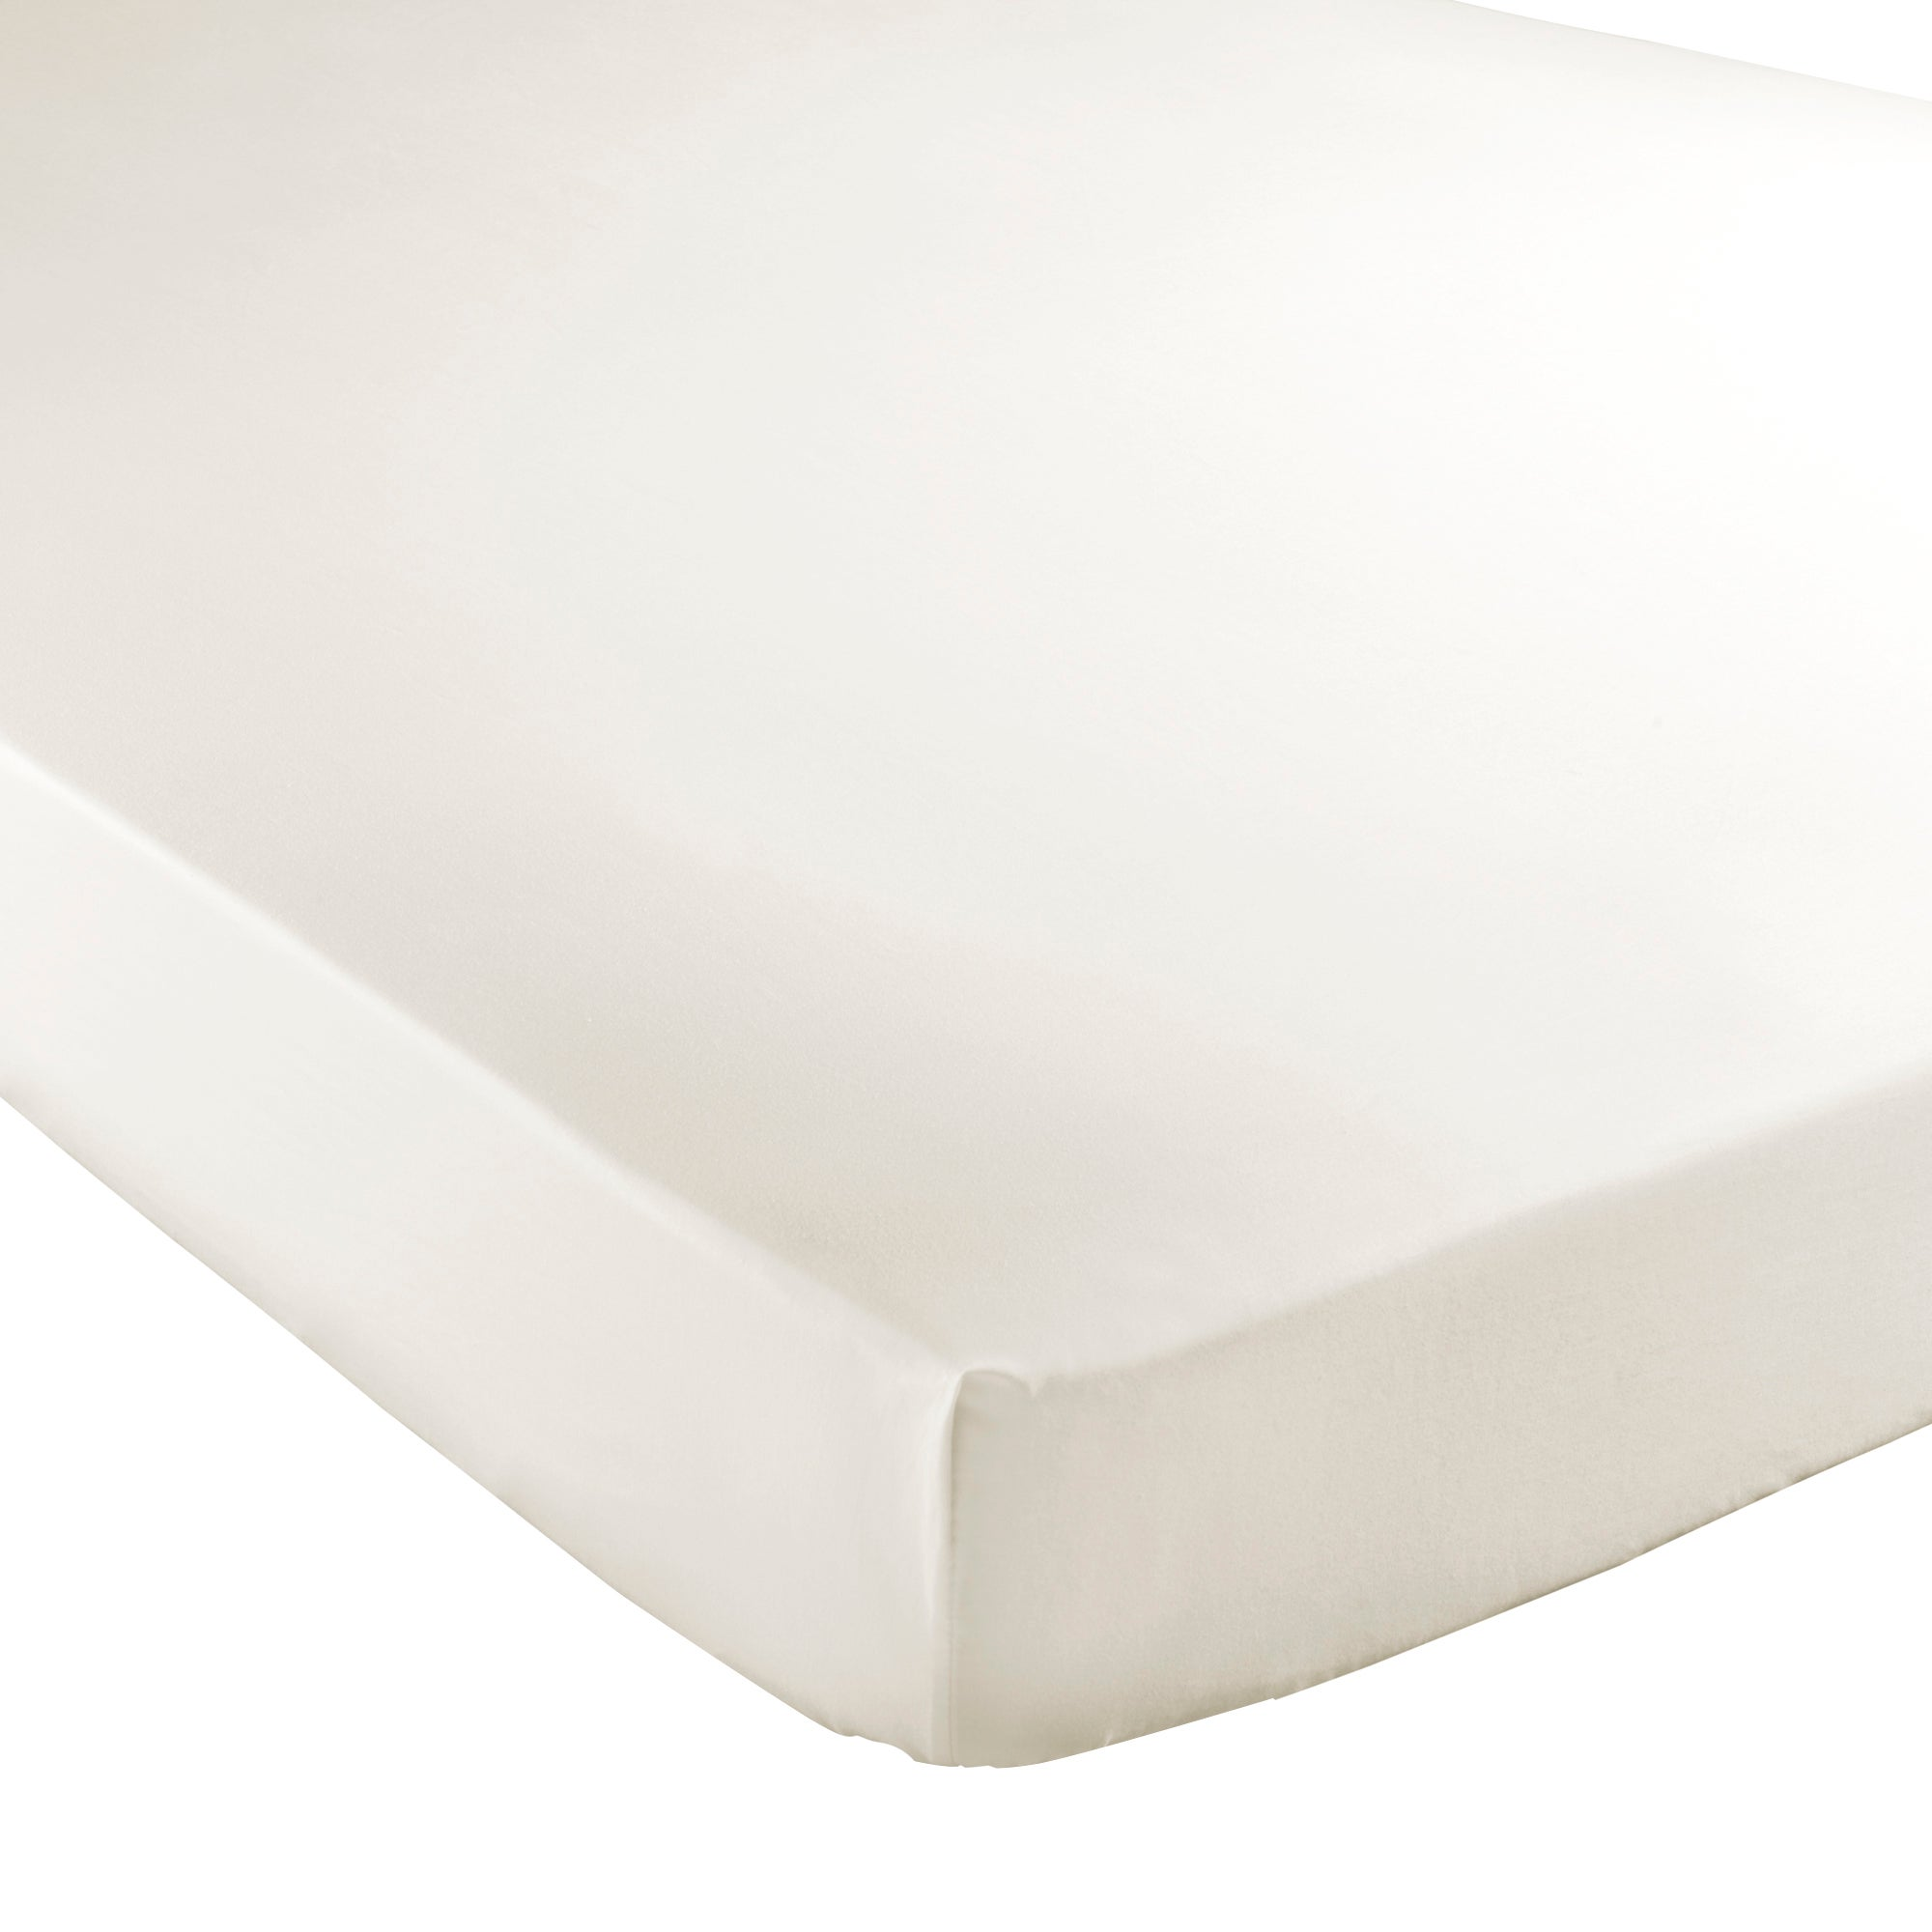 Cream Hotel Pima Plain 400 Thread Count Collection Fitted Sheet